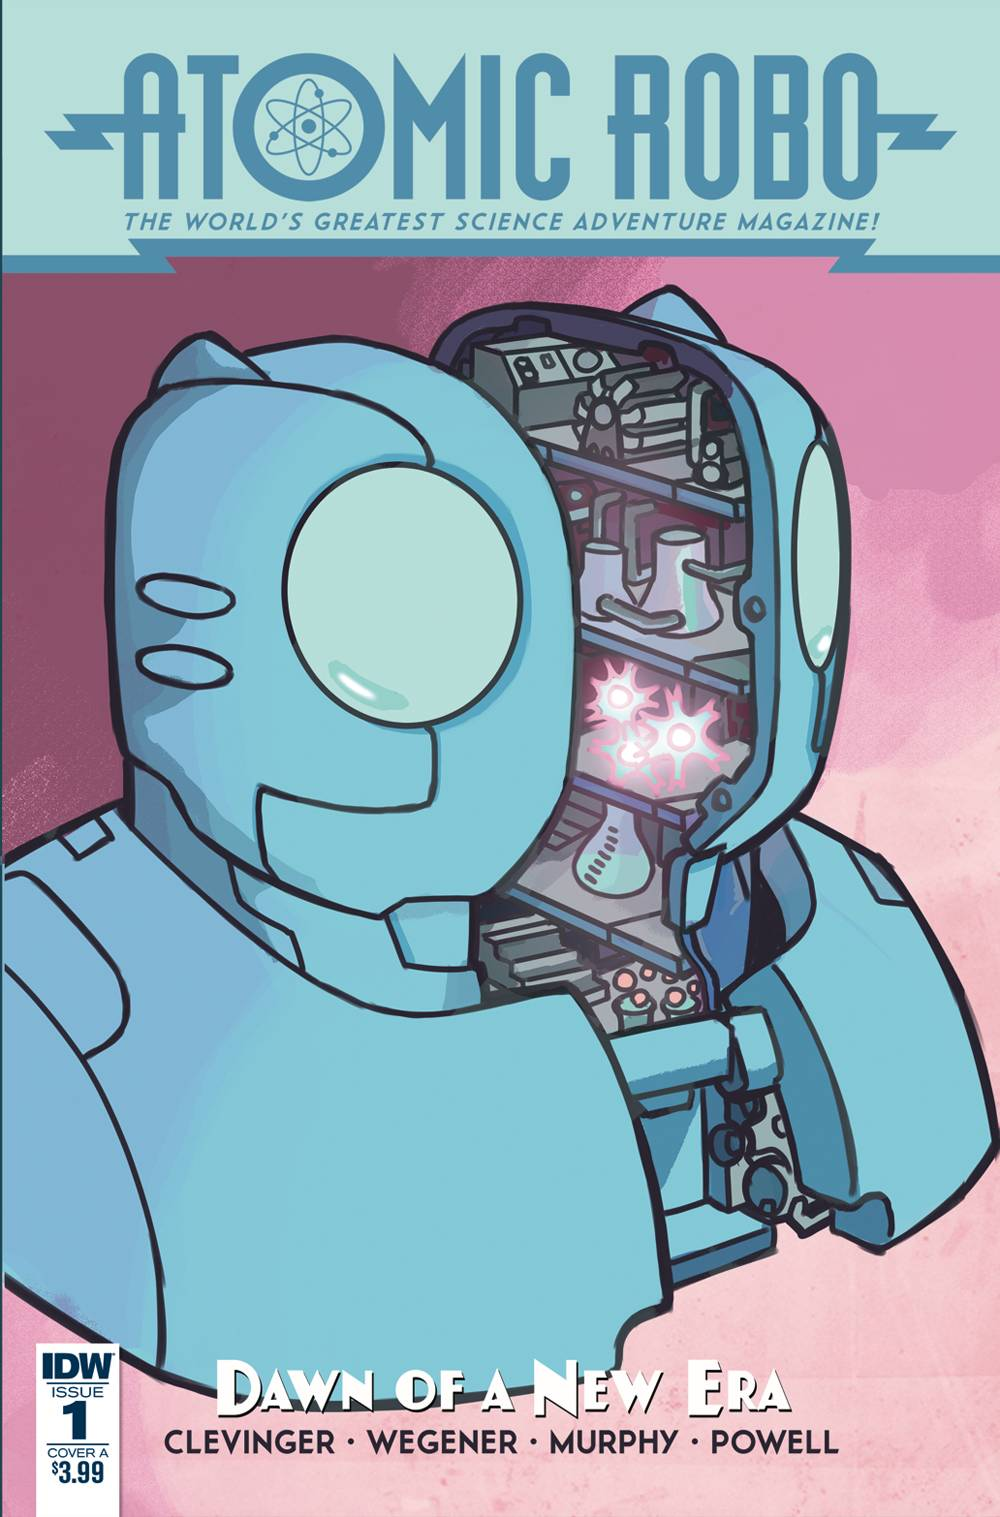 ATOMIC ROBO & DAWN OF NEW ERA 1 of 5 CVR A WEGENER.jpg